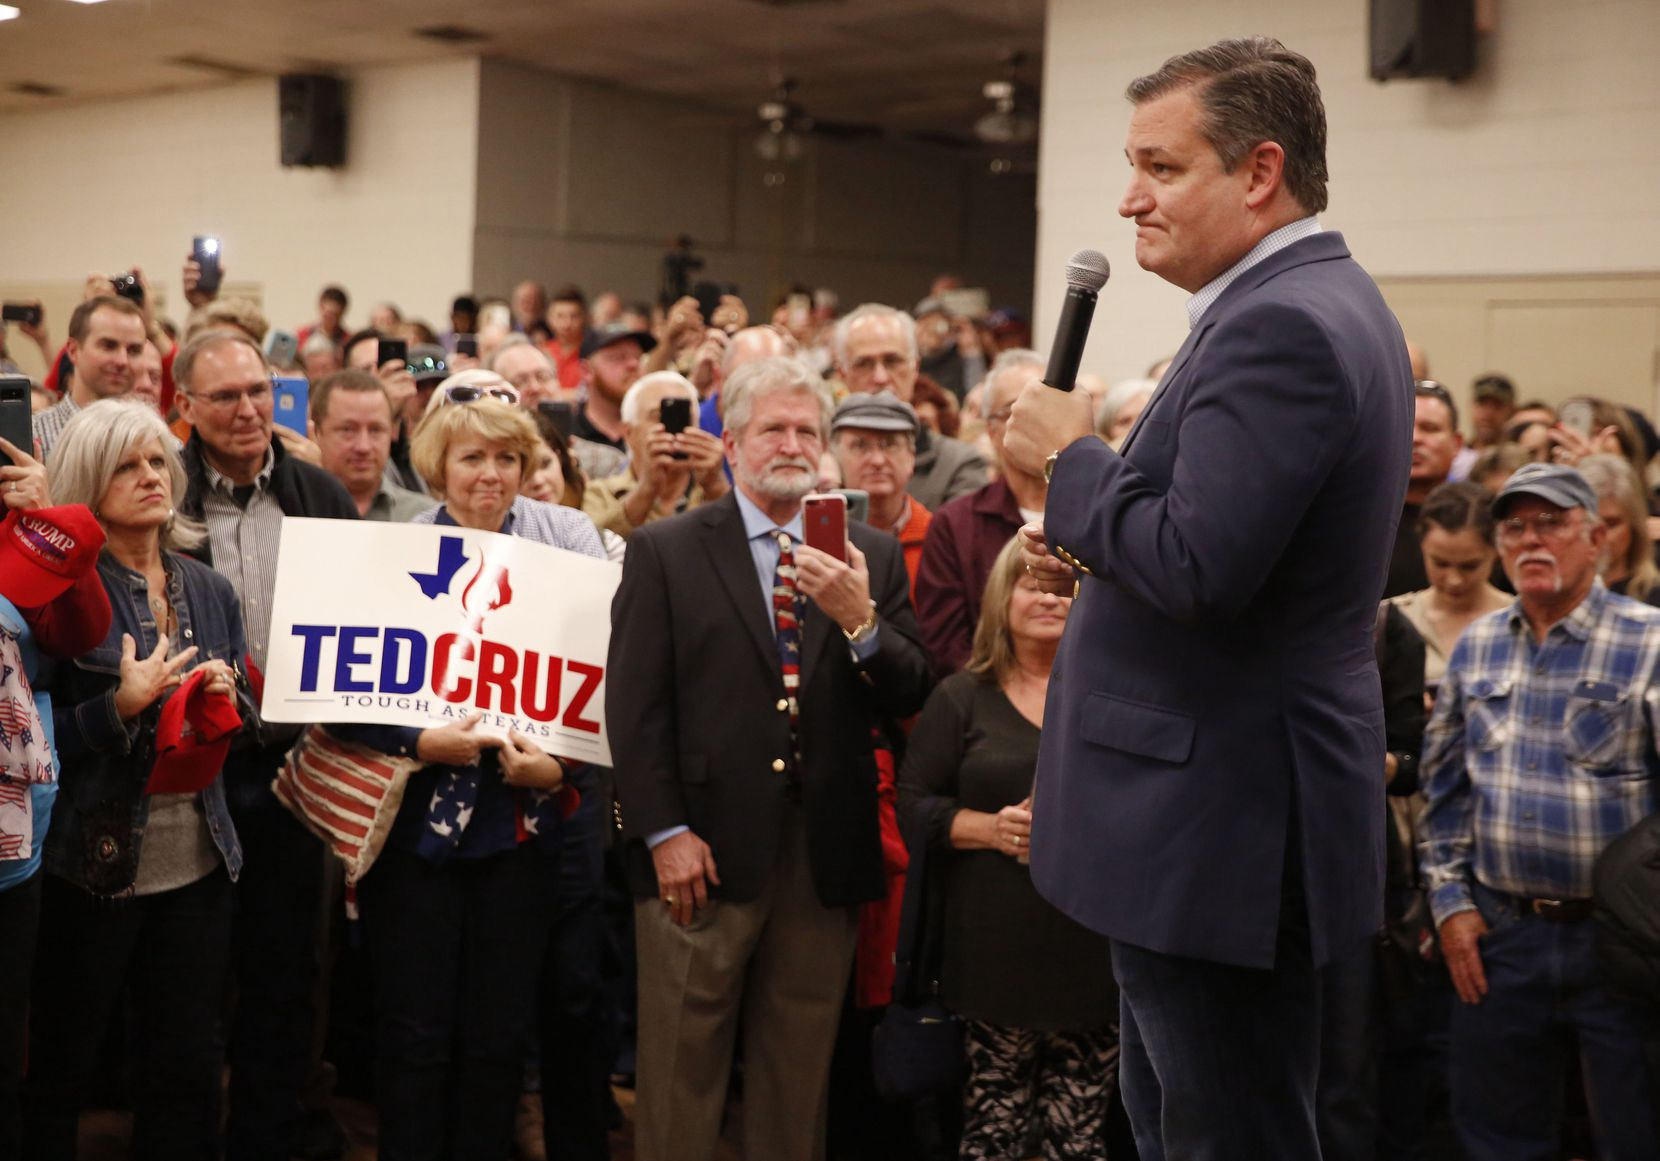 Sen. Ted Cruz speaks to supporters during a campaign rally at Sharon Shrine Center in Tyler on Thursday, Oct. 25, 2018.